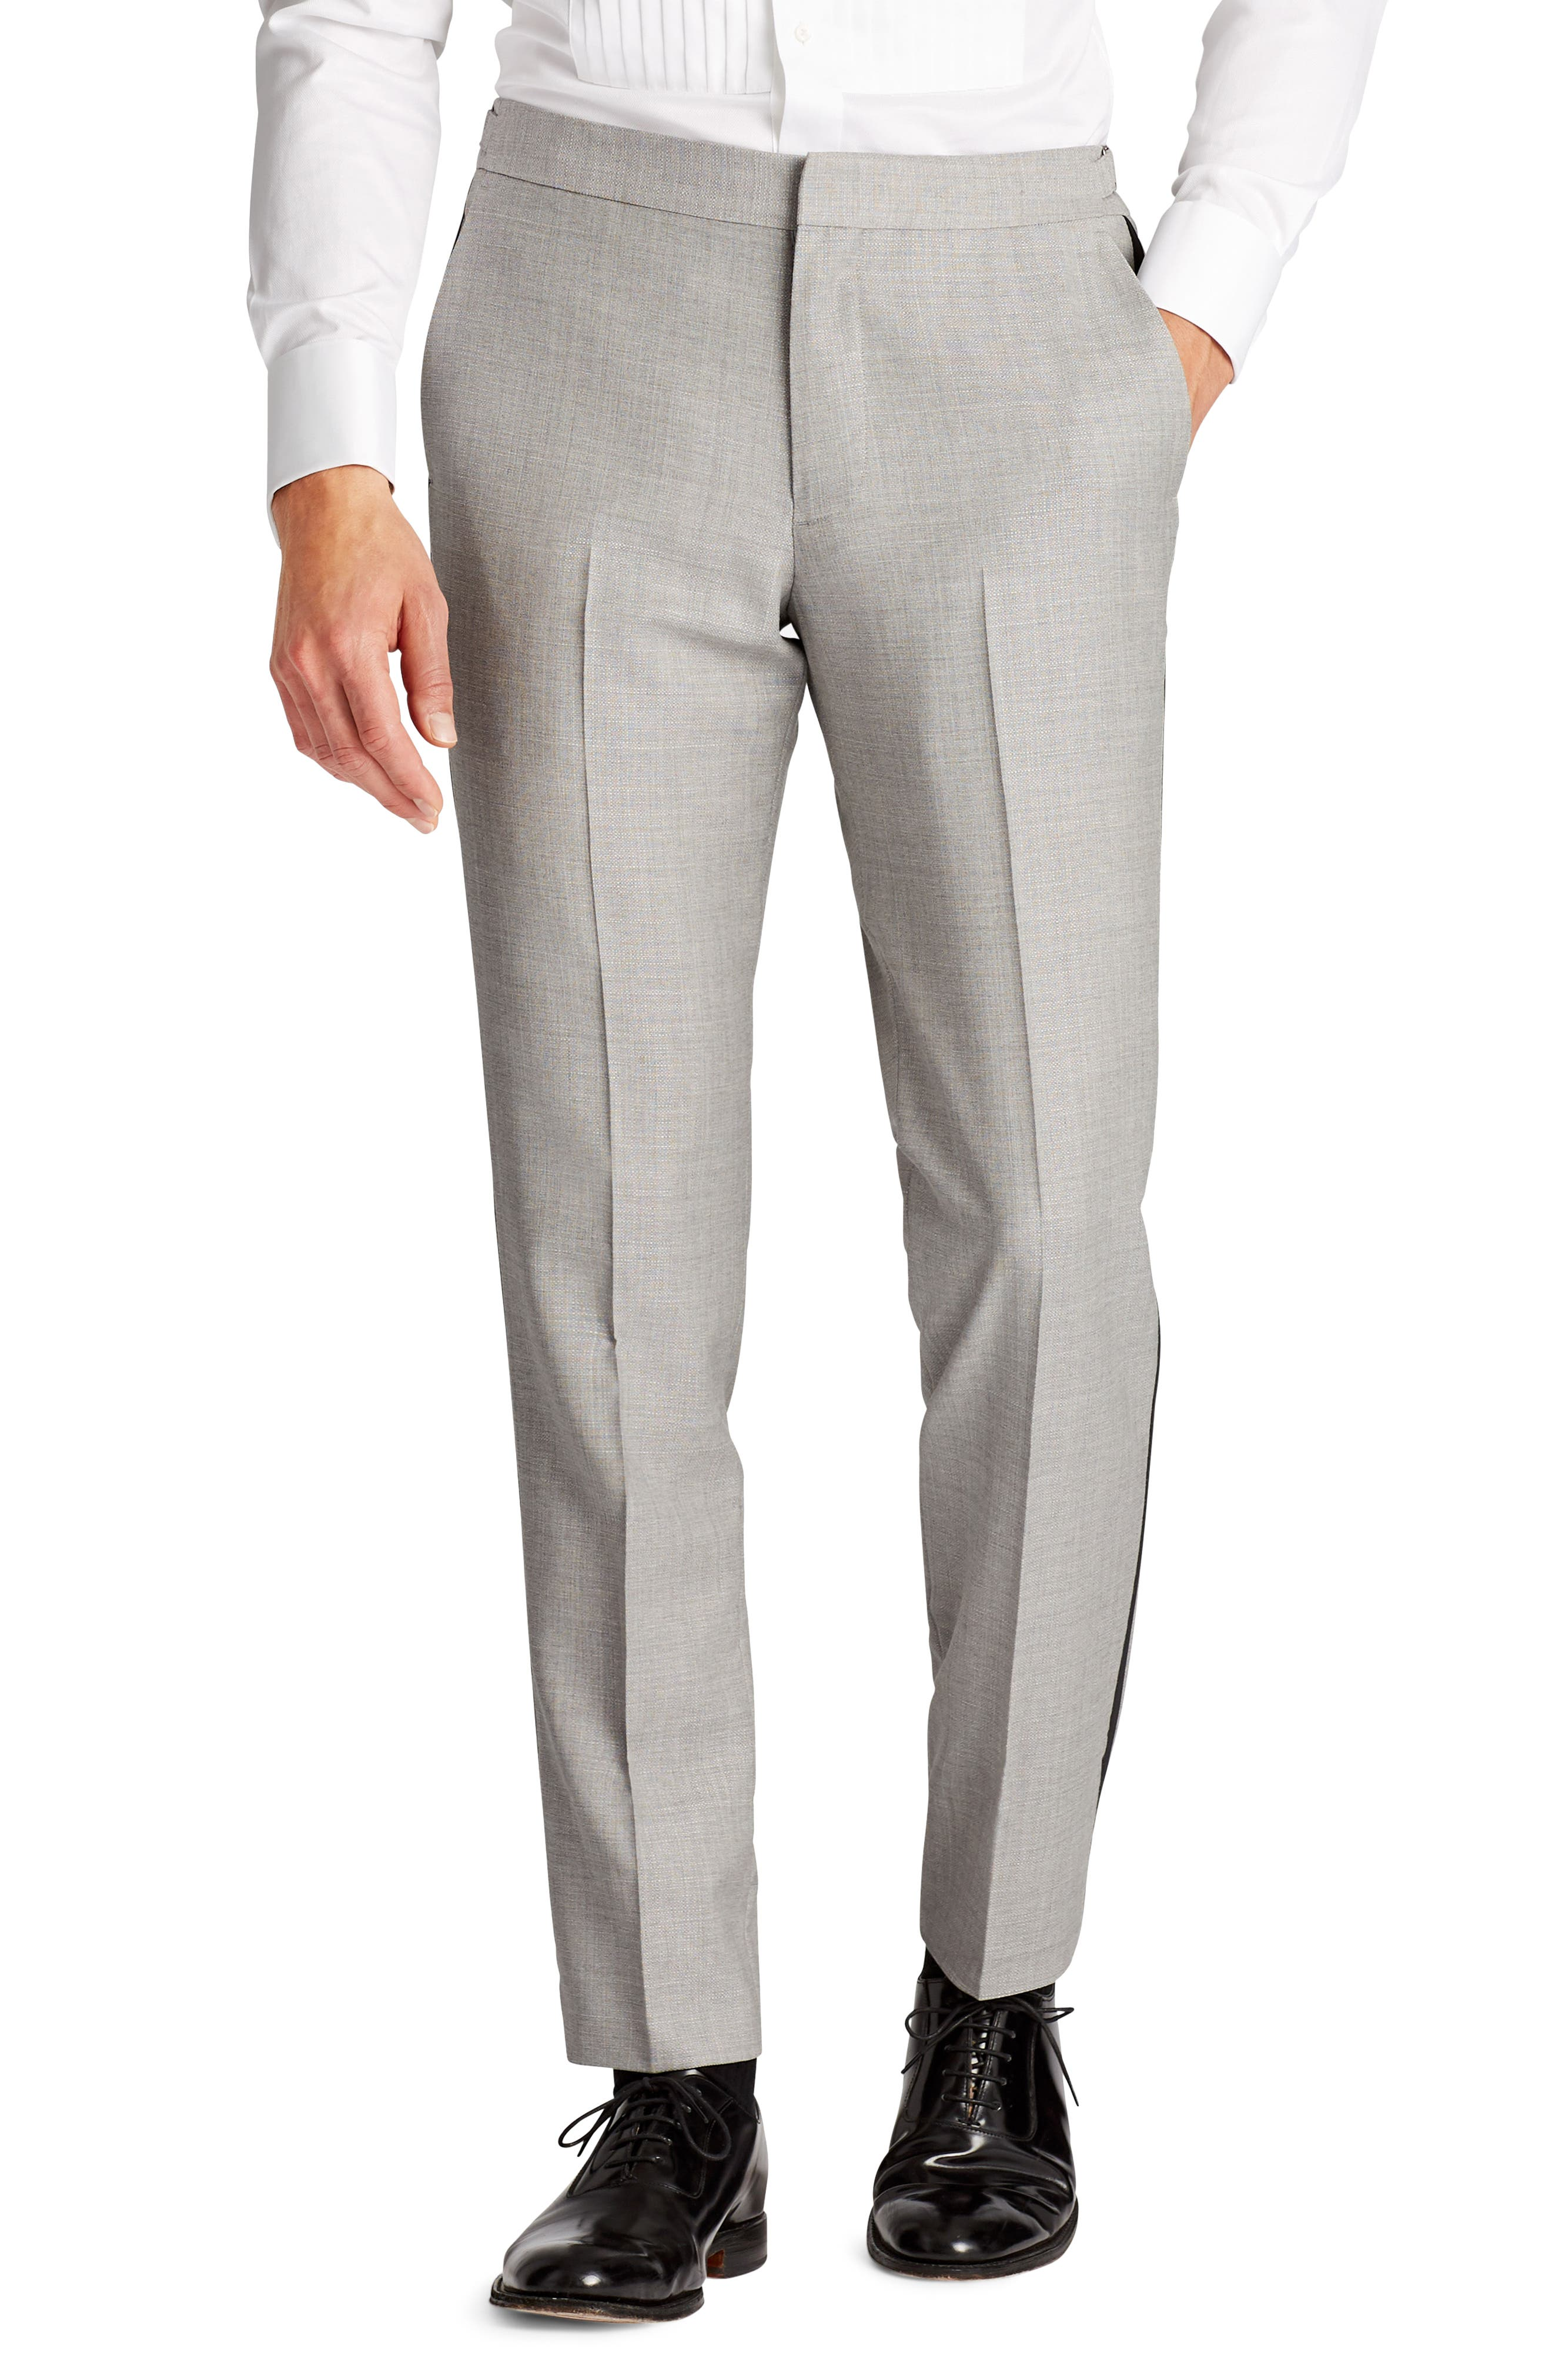 Capstone Flat Front Tuxedo Trousers,                         Main,                         color, Pearl Grey